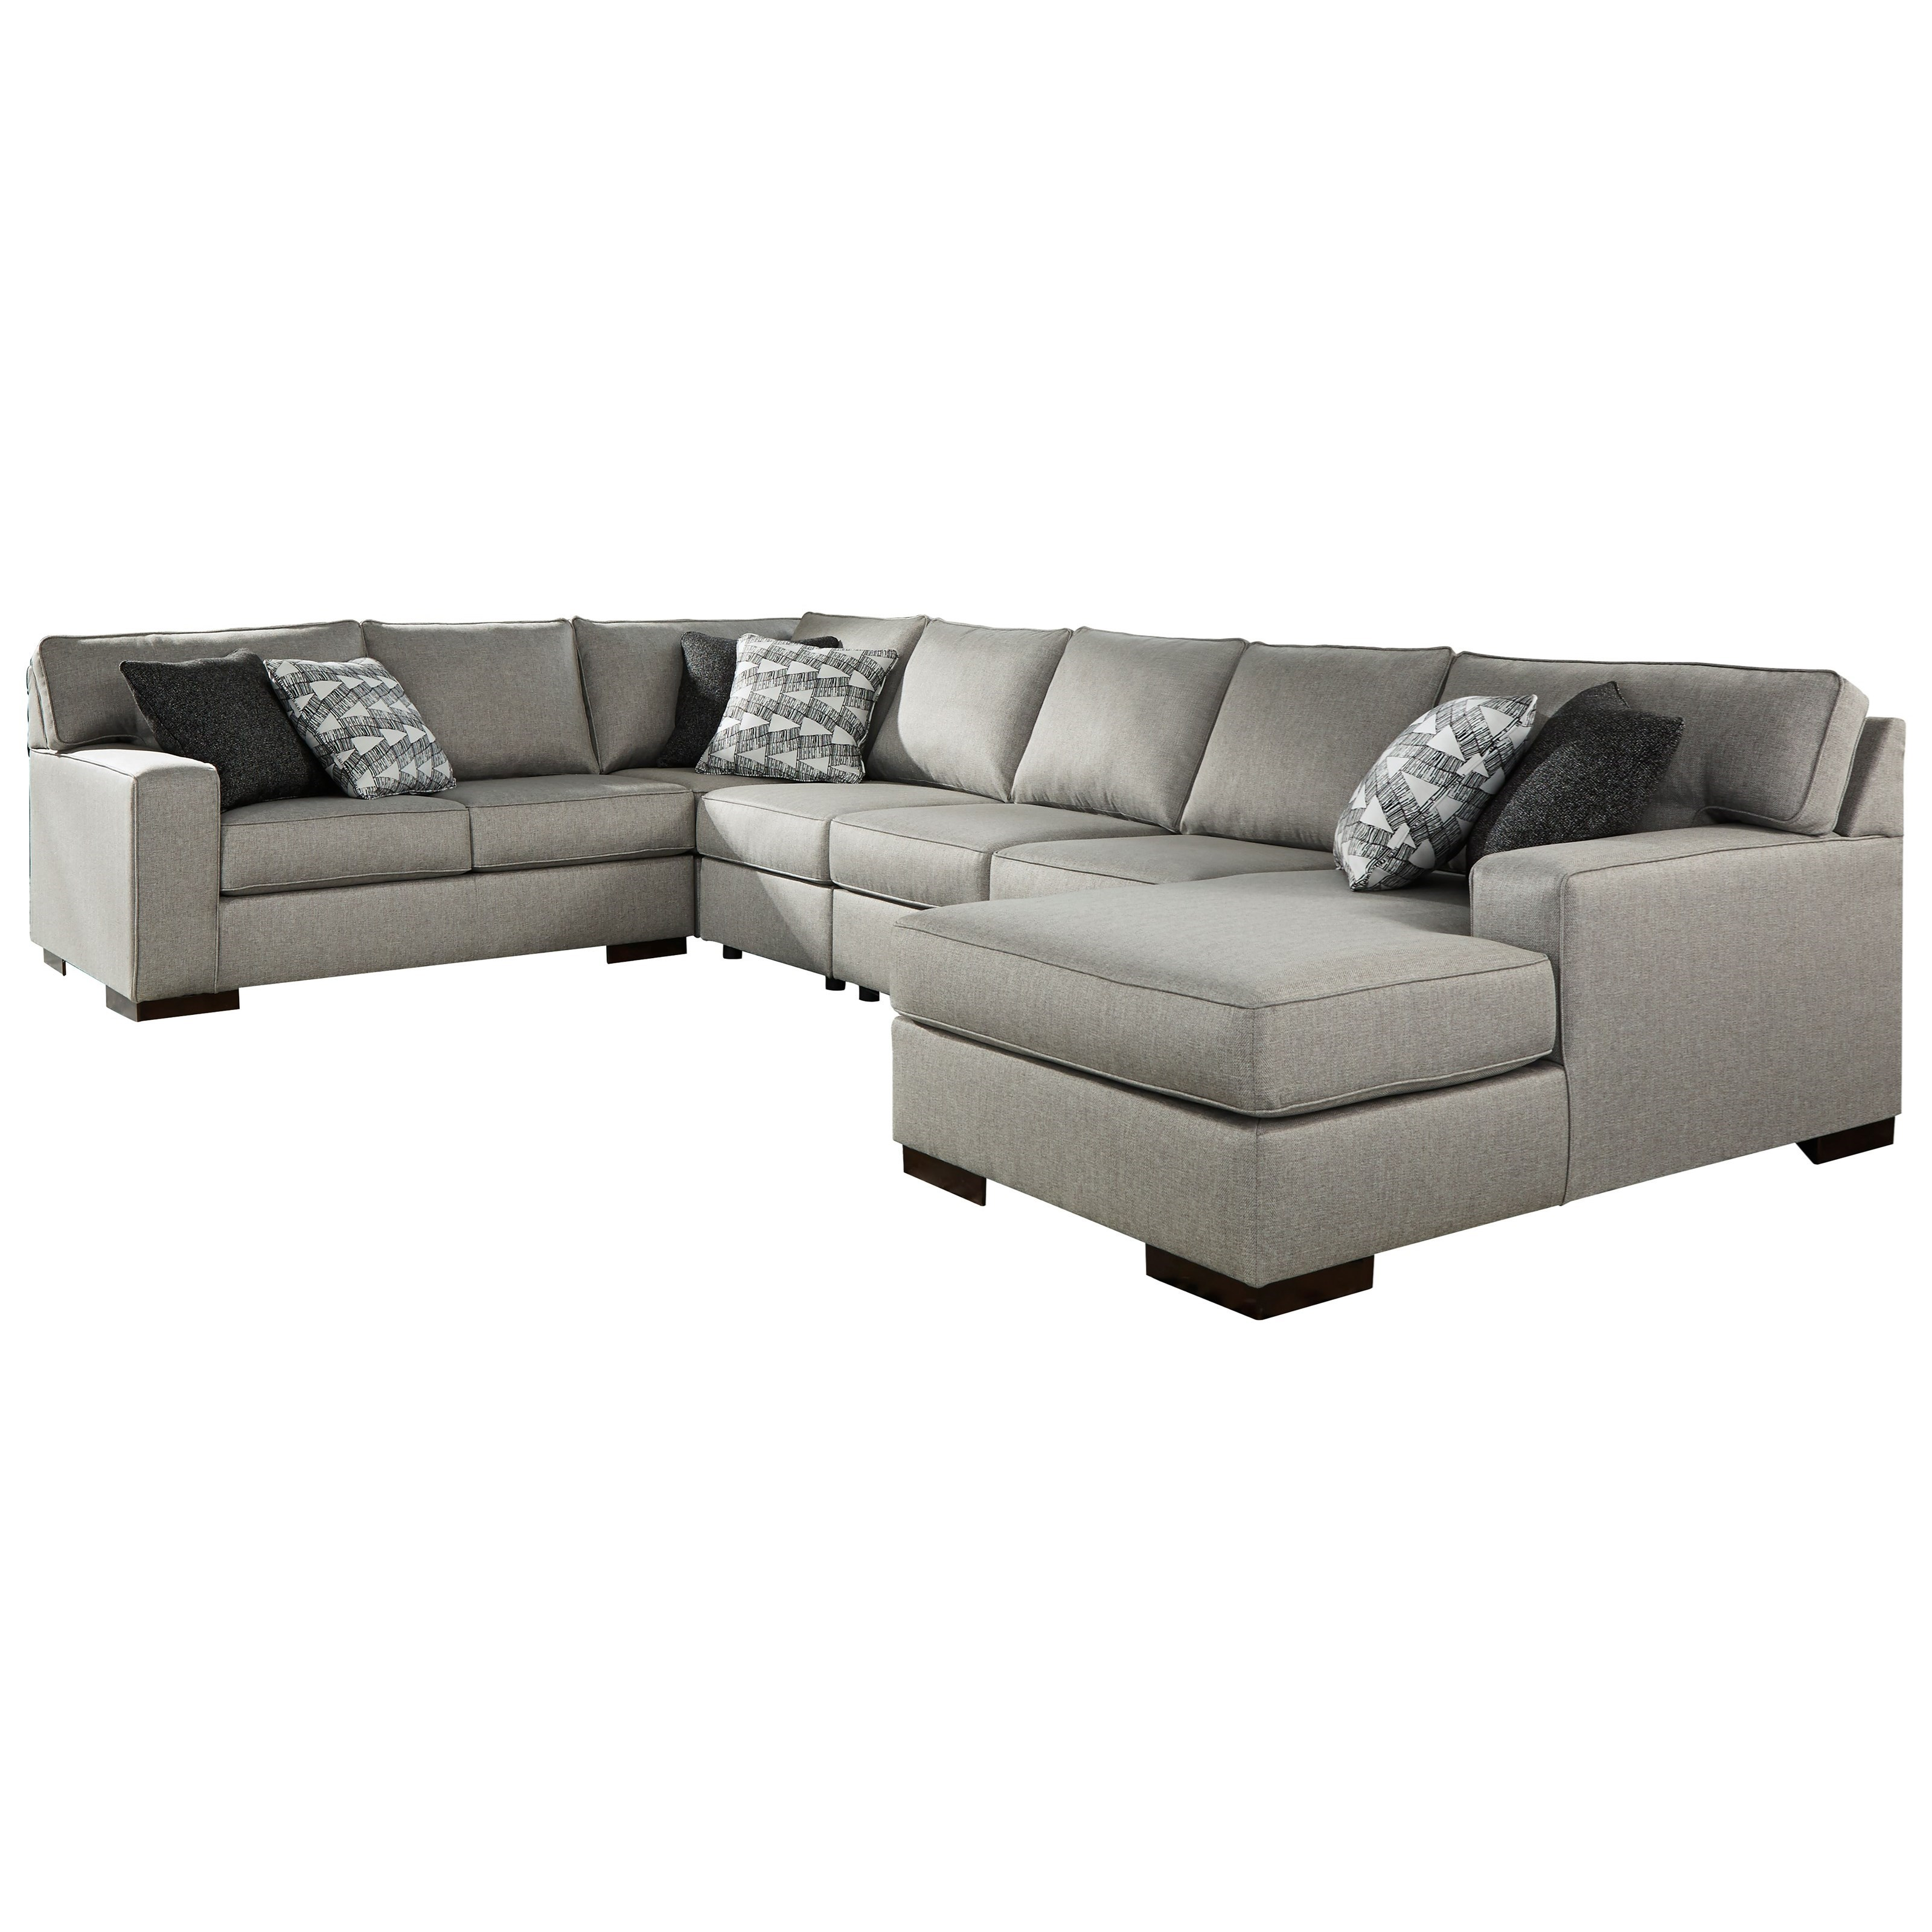 Marsing Nuvella 5-Piece Sectional with Chaise & Sleeper by Benchcraft at Walker's Furniture